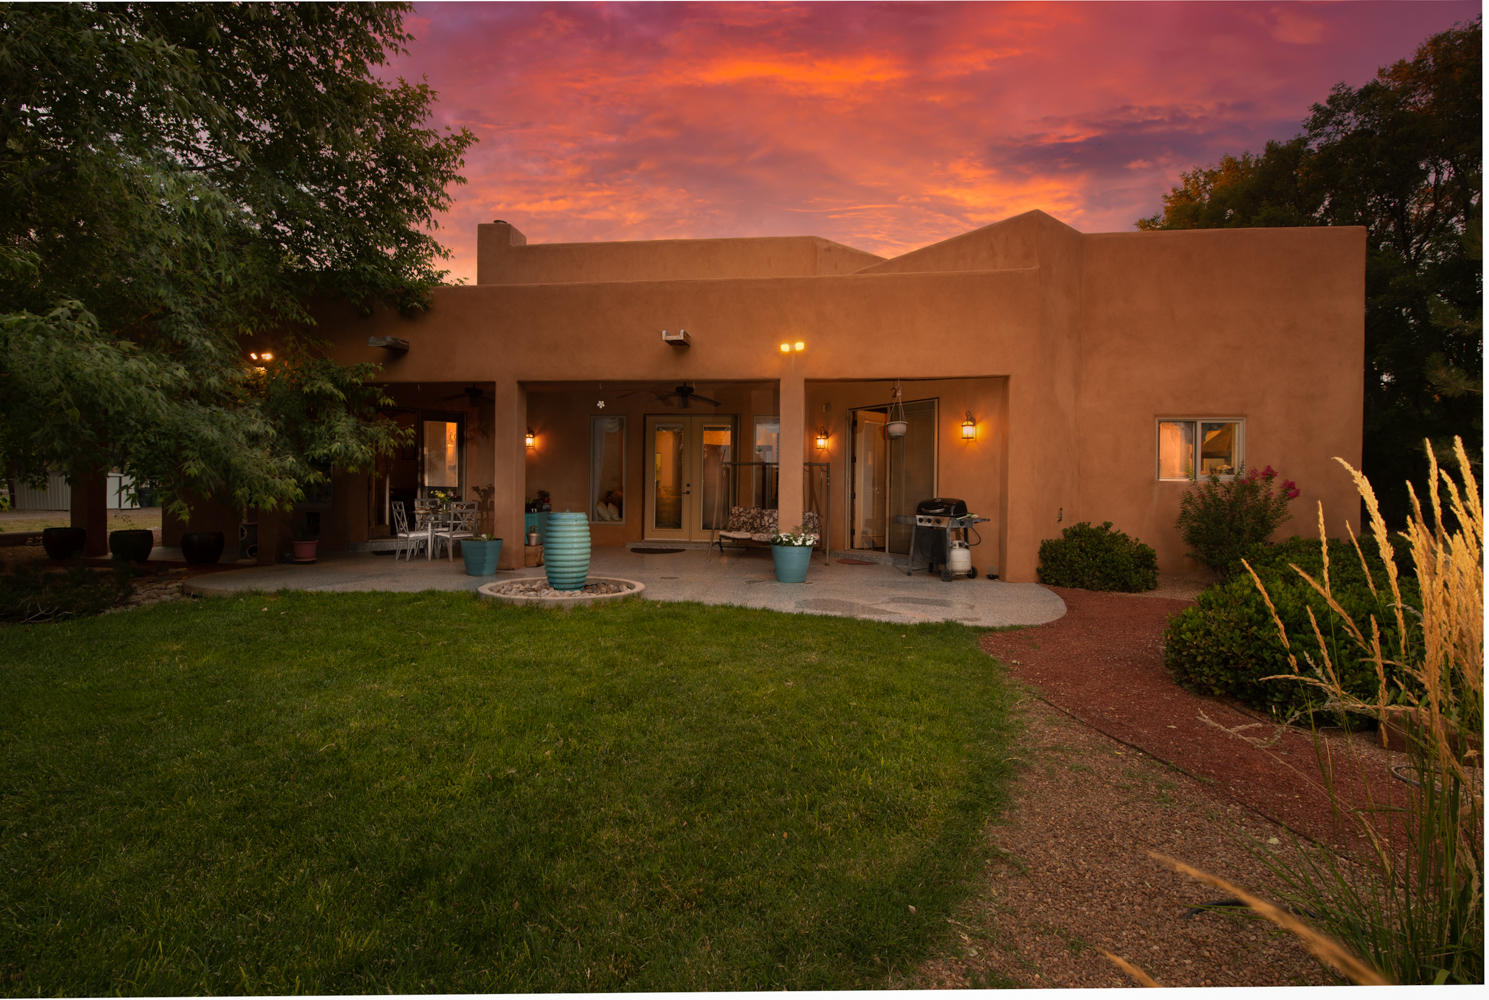 Oasis in the desert!  This remarkable home on 3.4 acres is paradise for you and your animals.  With MGRCD irrigation rights, and pole fencing all around, this property is ready for all to move-in.Enter through a cozy, fireplaced courtyard to a home where architectural details abound.  The exquisite LR  has cathedral ceilings with tongue-in-groove detailing, a soaring fireplace and large custom windows. The Wolf appliances, in this Chef's kitchen, include Sub Zero Refrigerator, Convection Oven, Cook Top, Warming Drawer and a pot filler!  The Master Bath has a corner jetted tub as well as a magnificent rain shower.  The Master Bedroom boasts another custom Fireplace with entrance to a patio with a water feature overlooking the land.Come experience  beauty and tranquility of your new